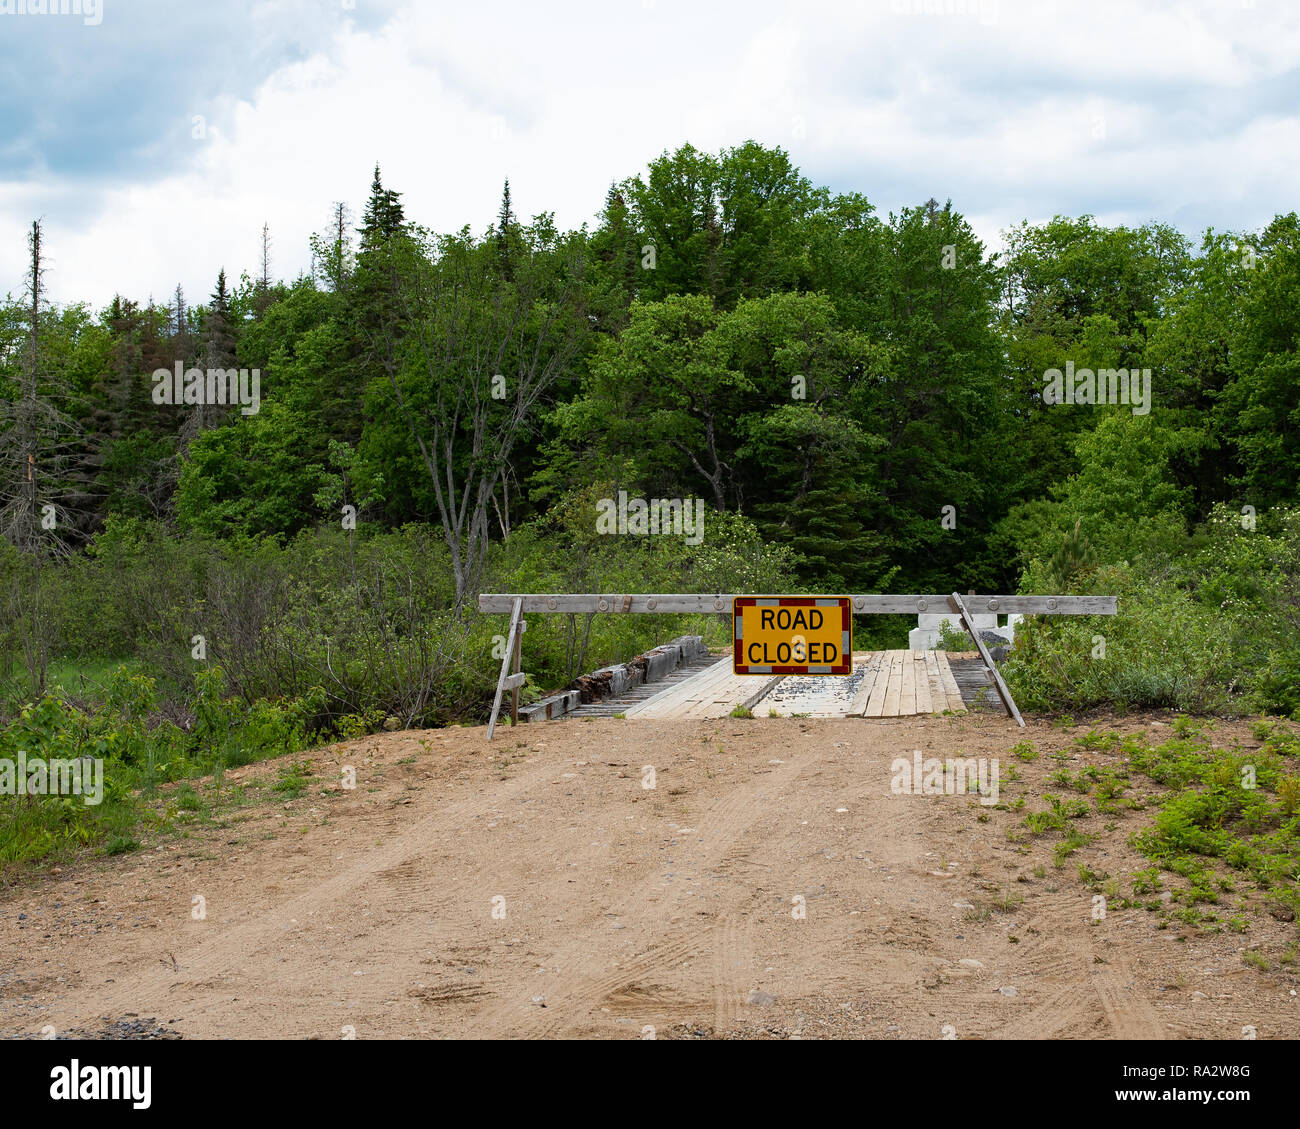 A road closed sign and barricade blocking off a condemned wooden logging bridge in the Adirondack wilderness. - Stock Image